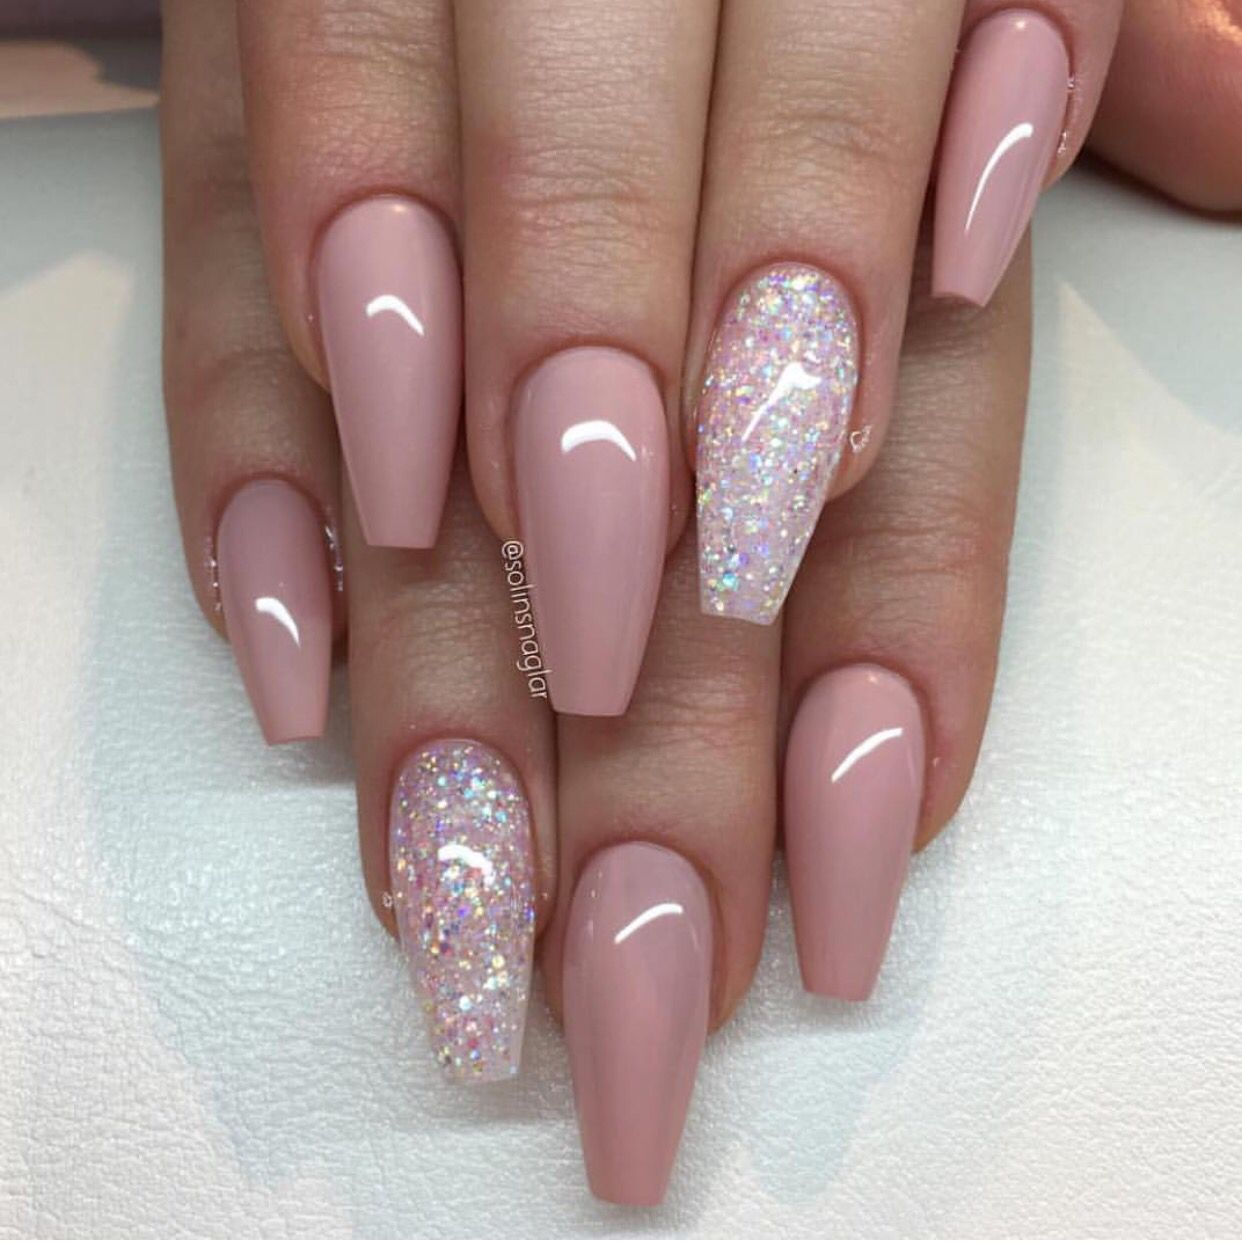 Pink with Glitter Accent Nail | Nails | Pinterest | Glitter accent ...